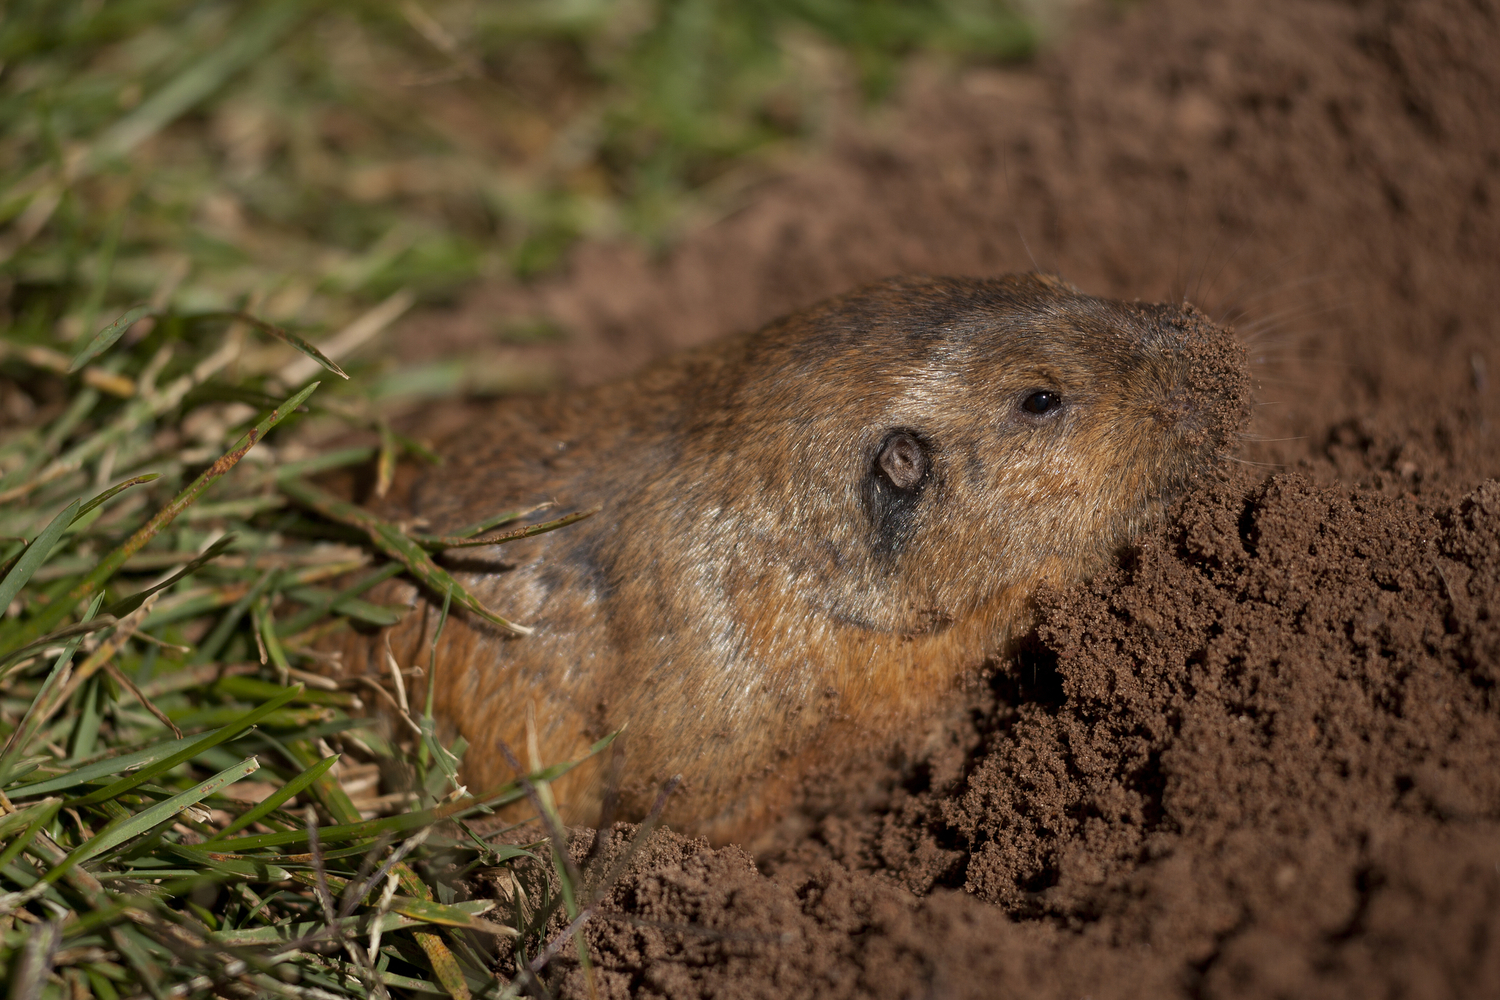 gopher control pest removal services in the bay area